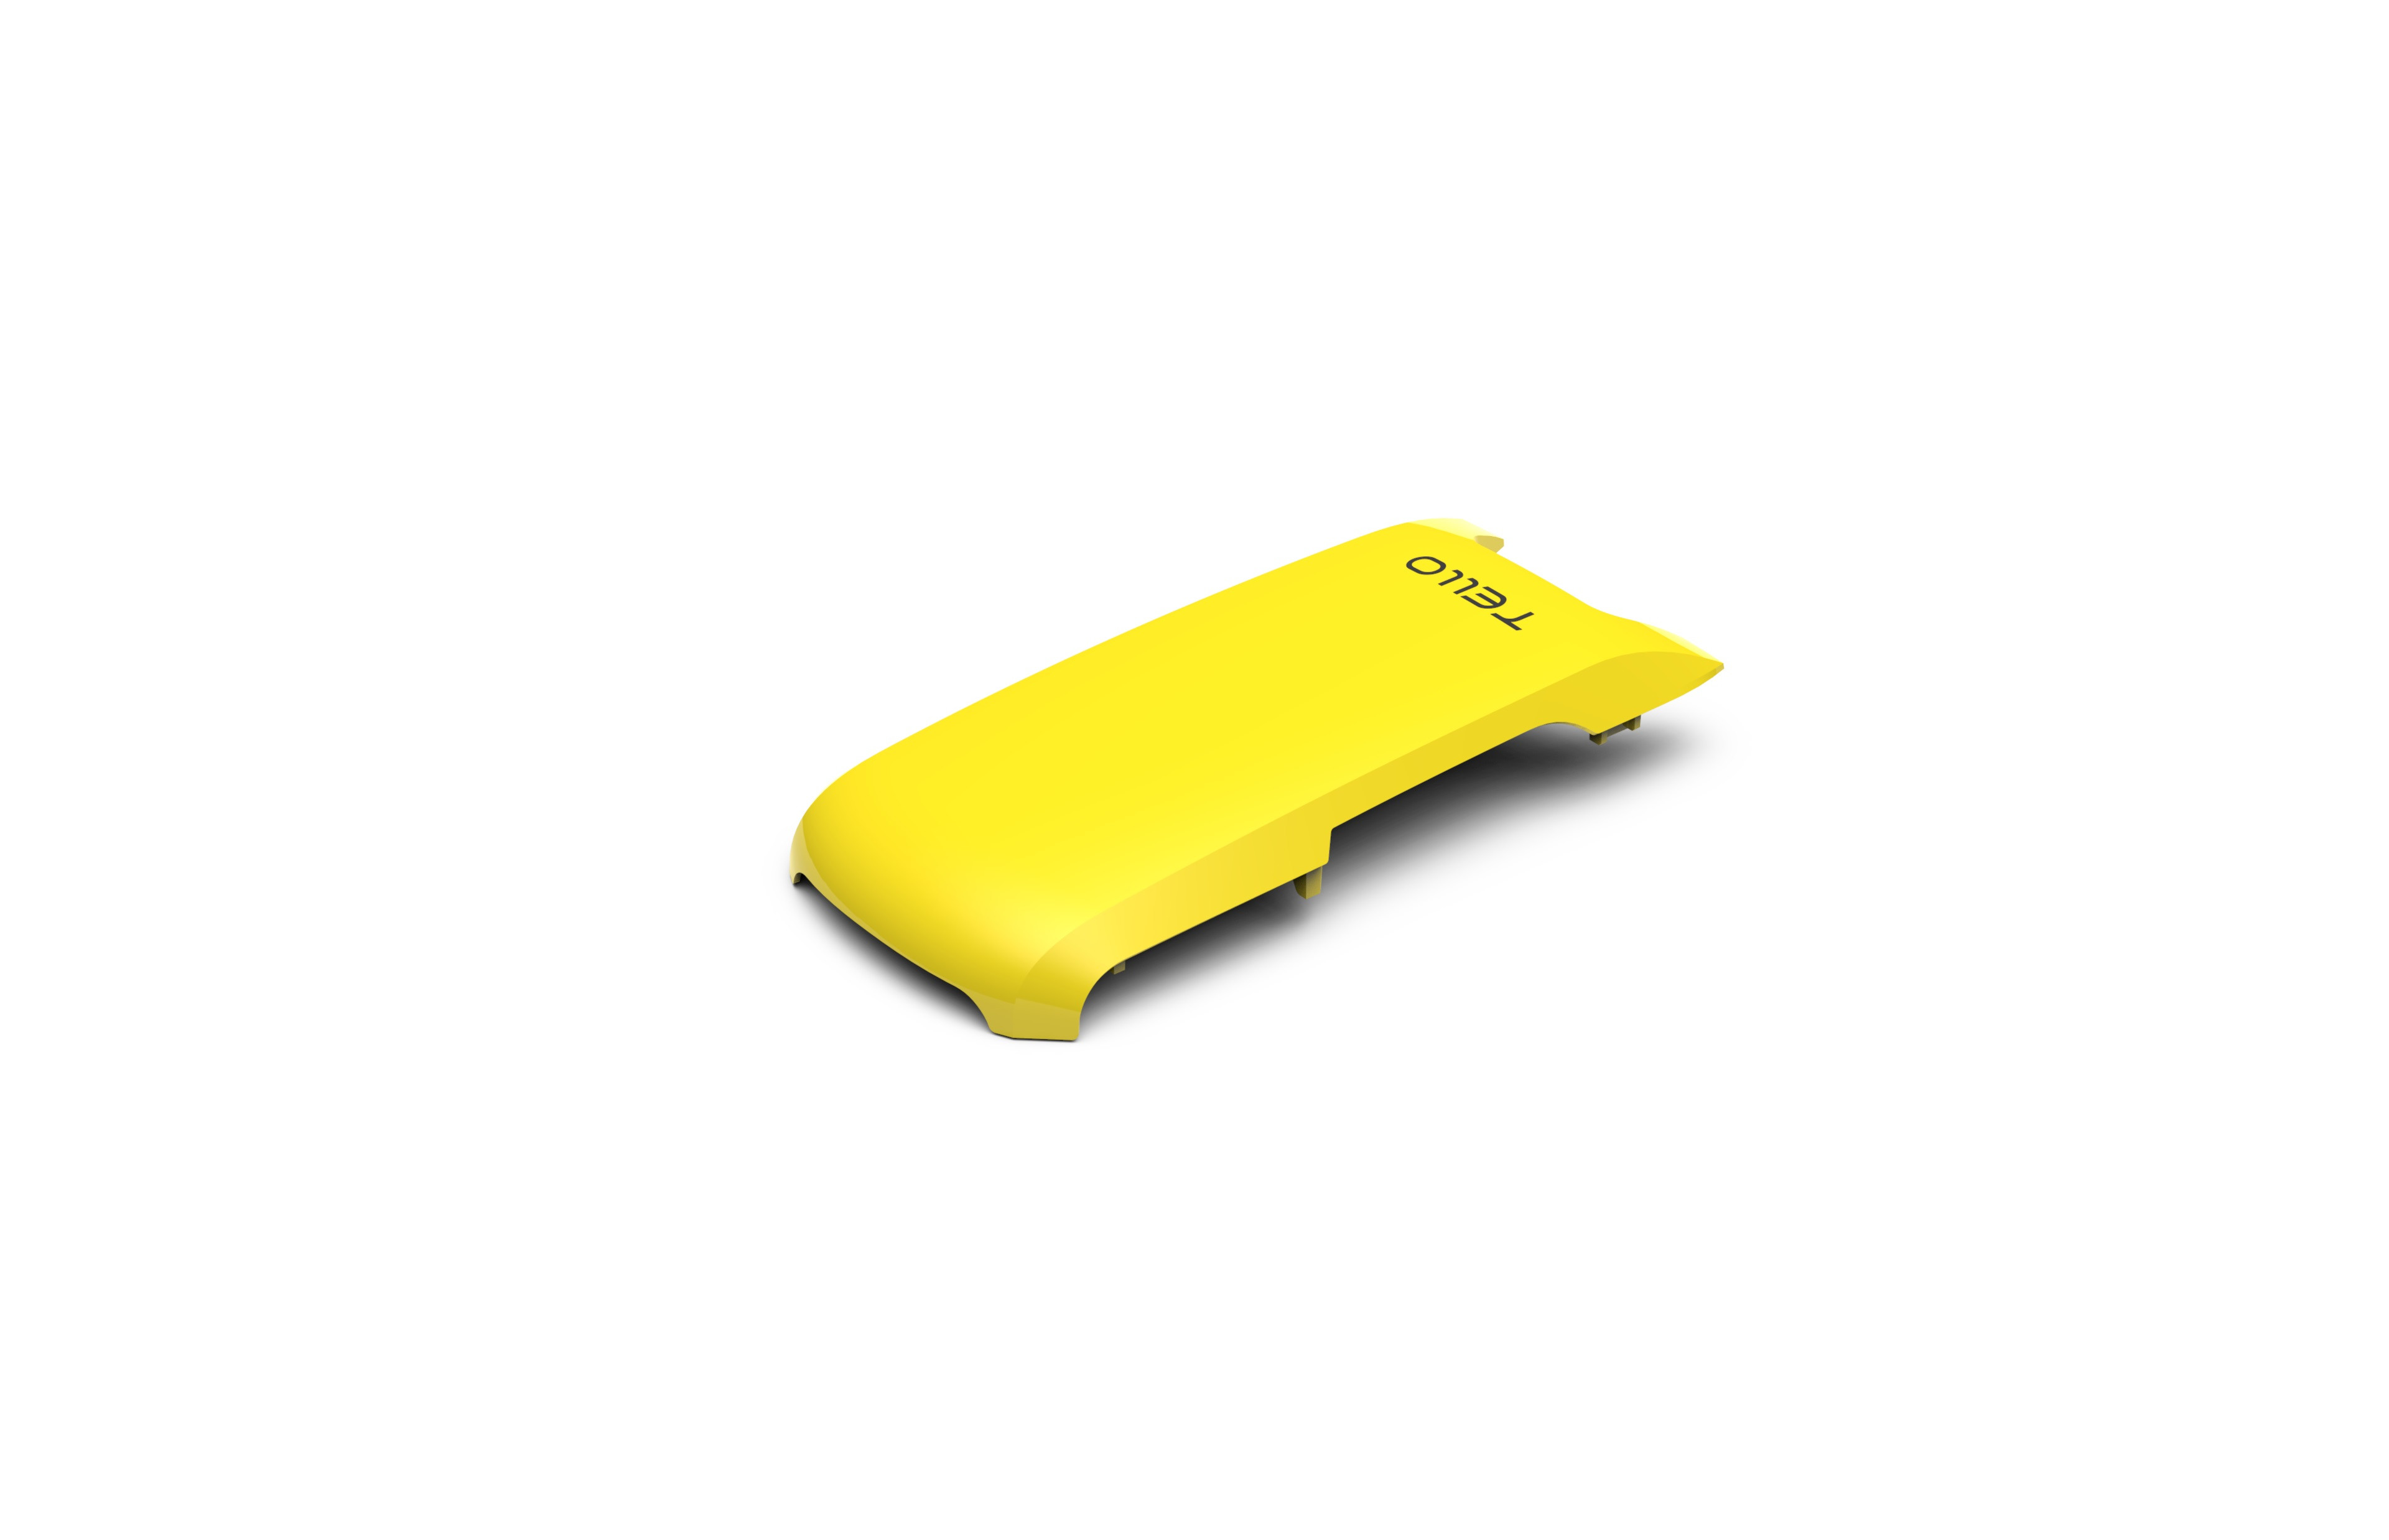 Maska Tello - Part 05 Snap On Top Cover Yellow